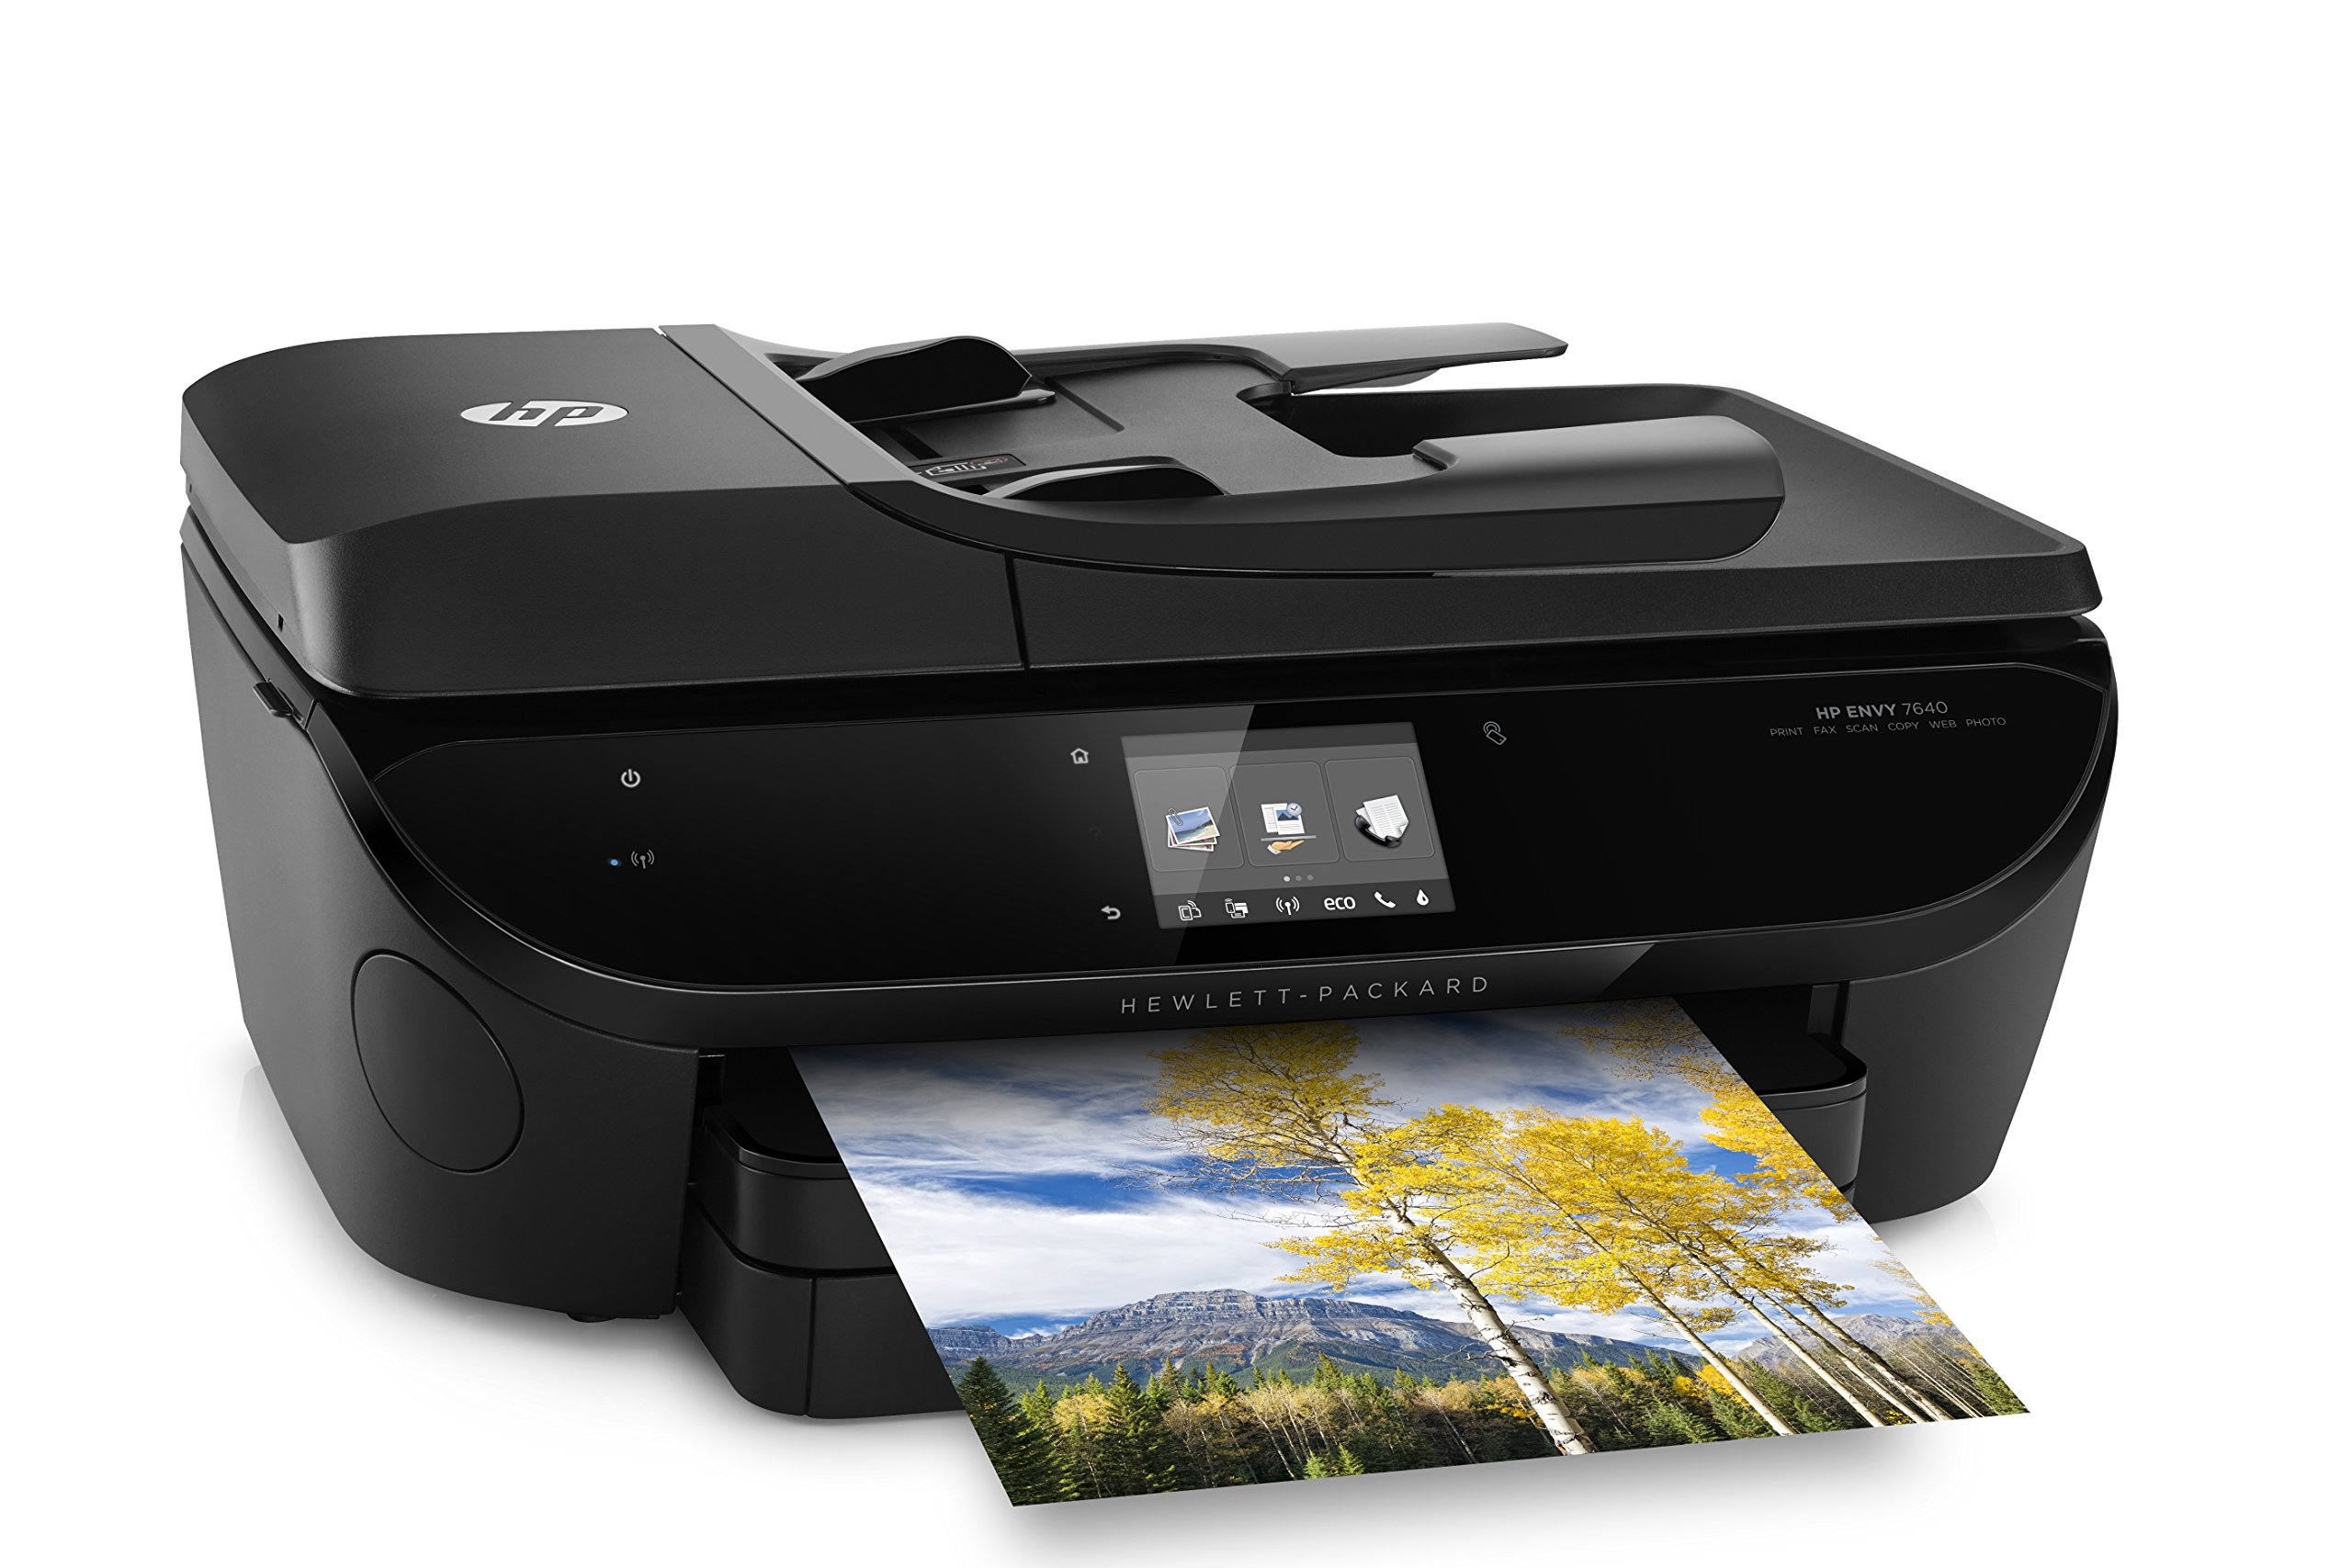 HP Envy 7640 Wireless All-in-One Photo Printer with Mobile Printing, Instant Ink ready (E4W43A) by HP (Image #3)